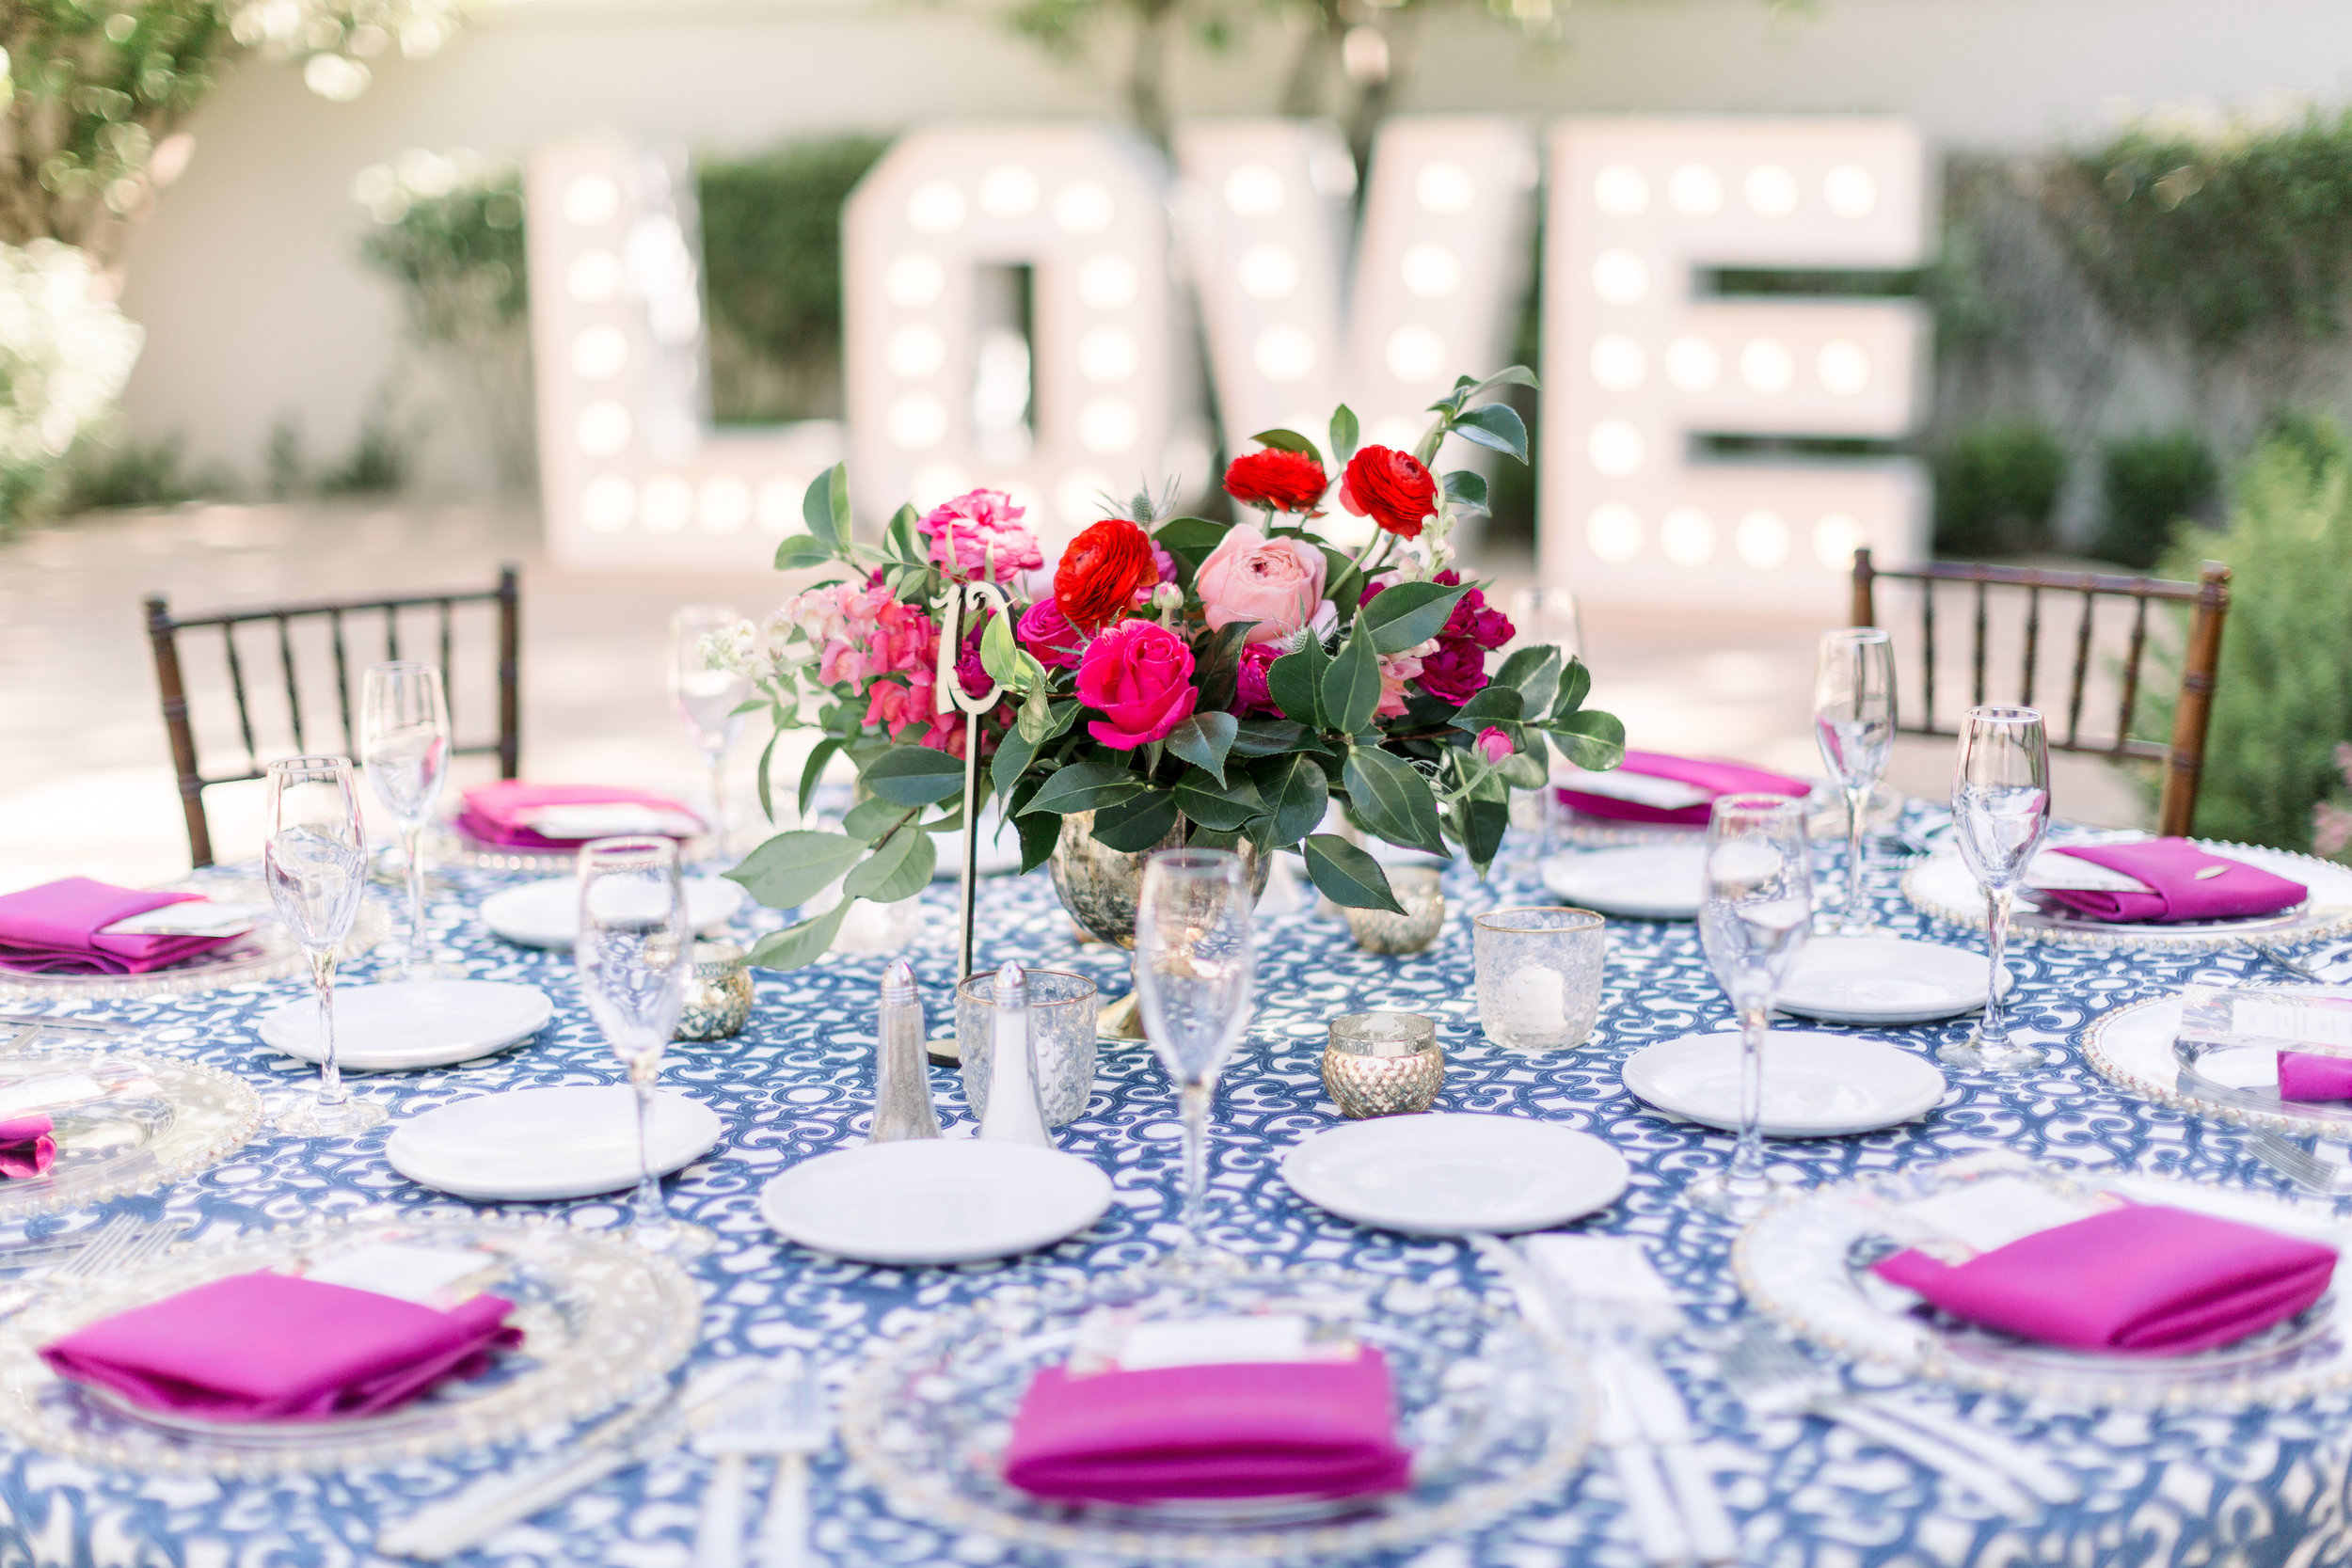 Roxanne and Brandon's El Chorro Wedding - Arizona florist Phoenix scottsdale Mesa chandler Sedona Prescott - La Tavola Linen Sutherland - Magenta, Blush, and Red Centerpieces